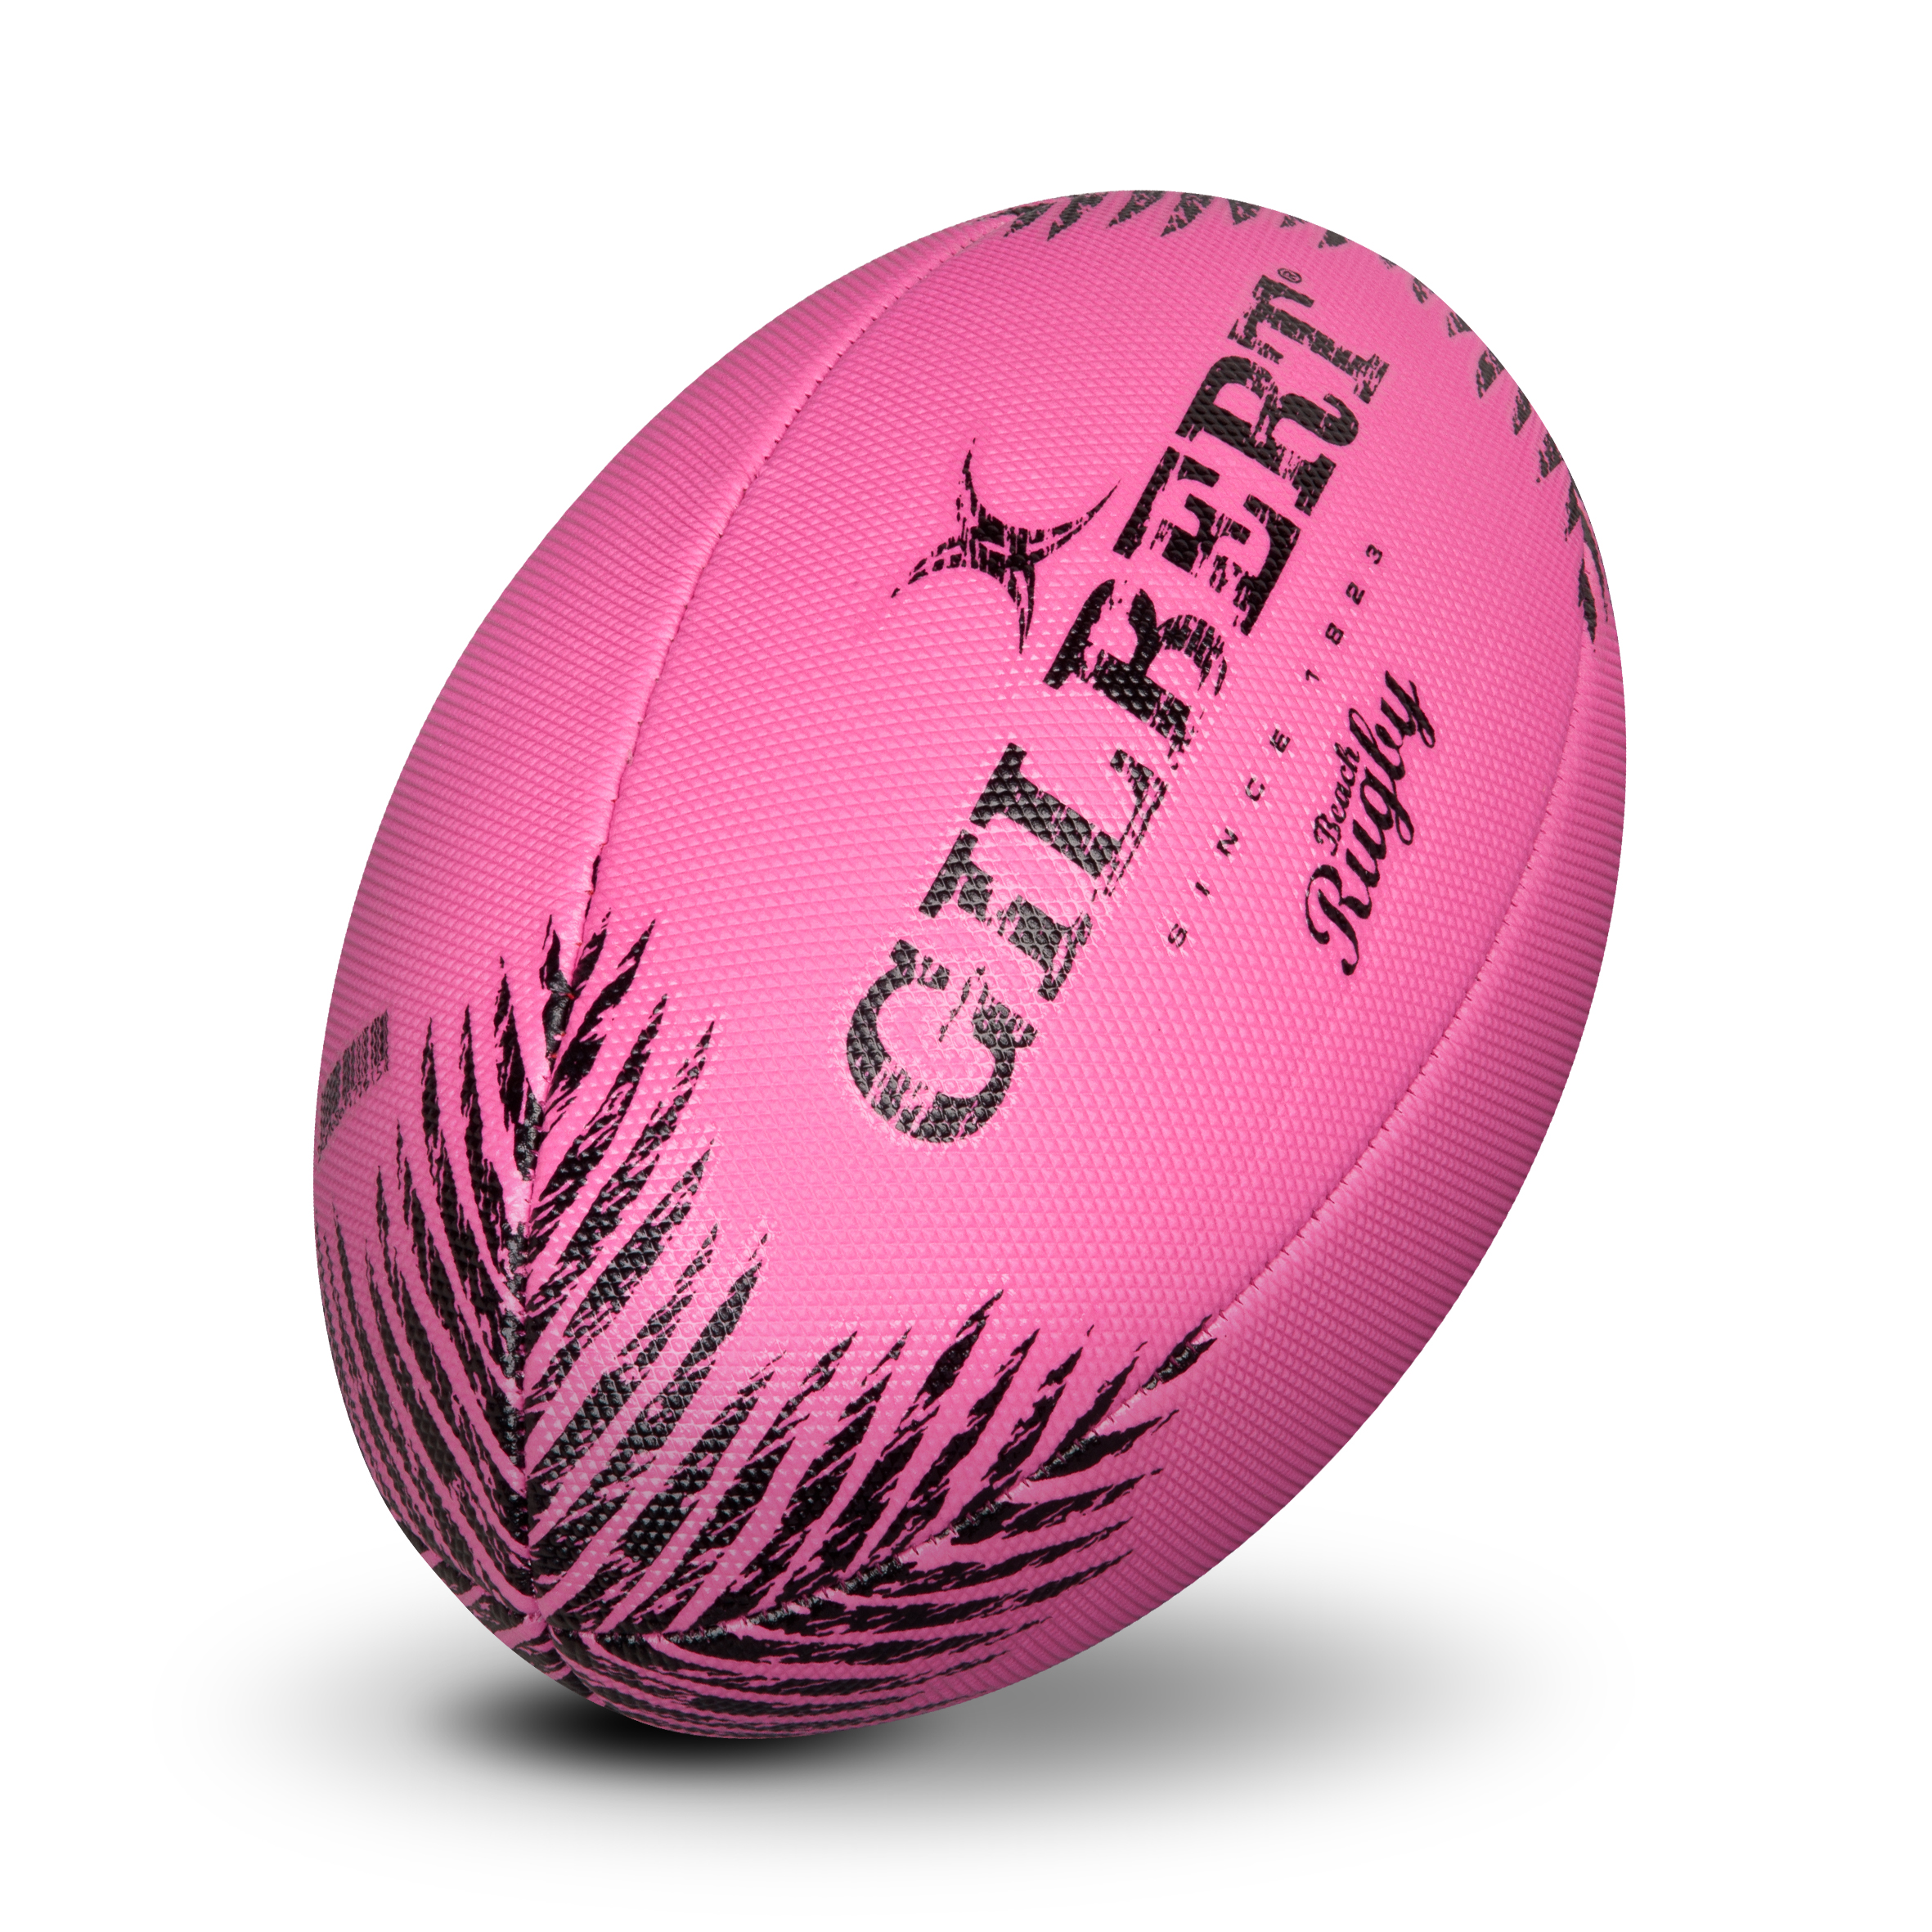 Gilbert Beach Rugby Ball-Pink - Size 5